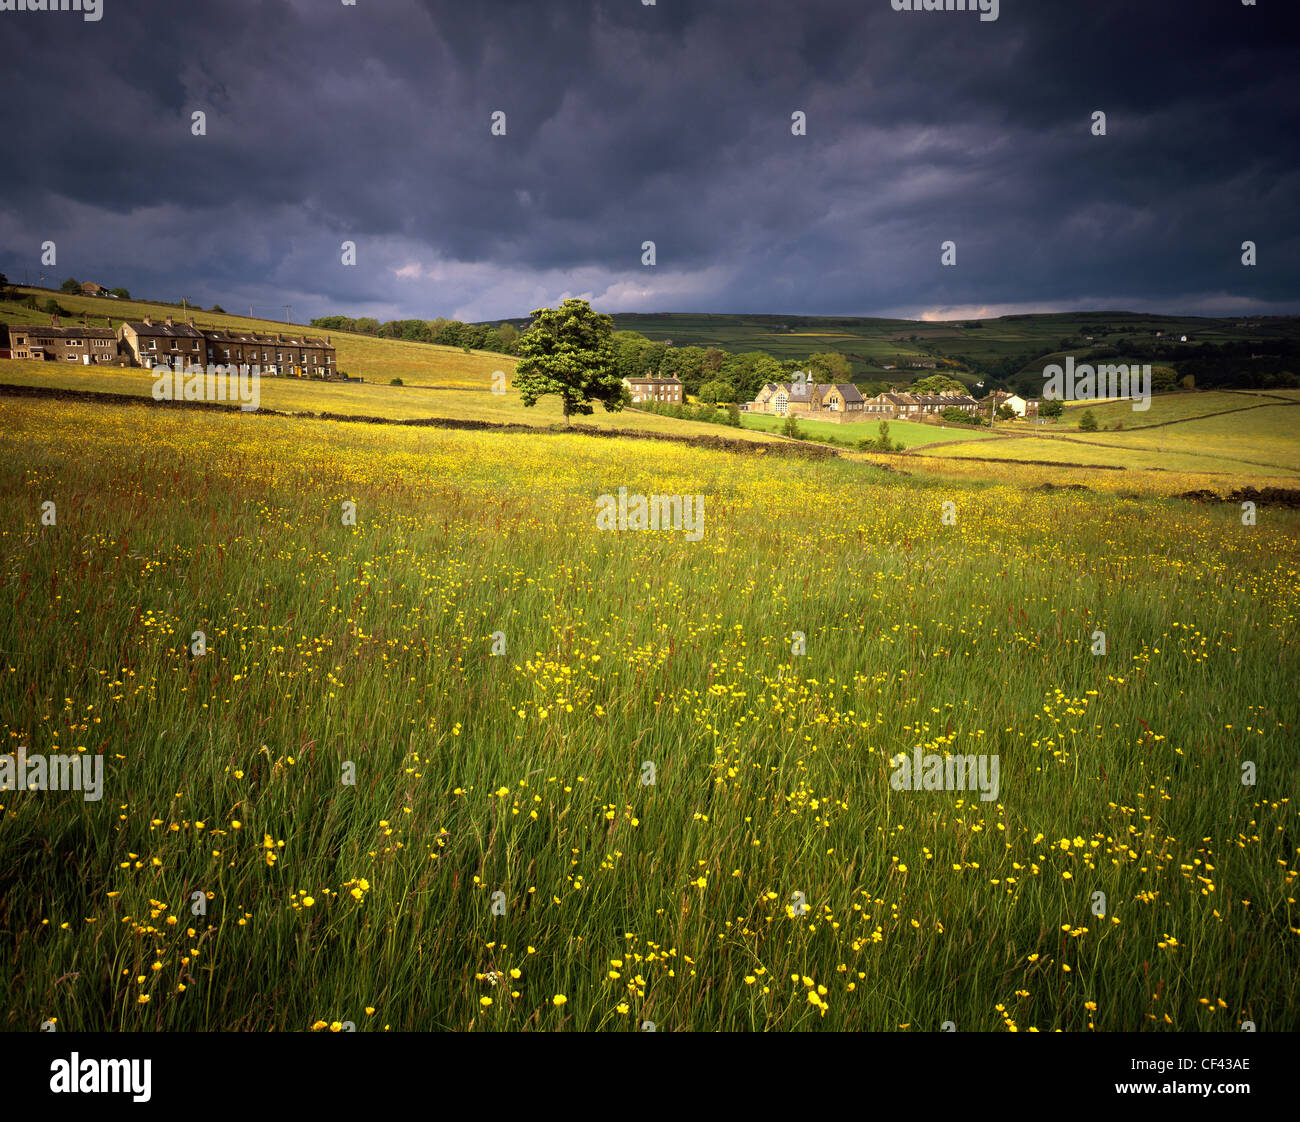 View across a hay meadow towards a village in the countryside surrounding Halifax. - Stock Image